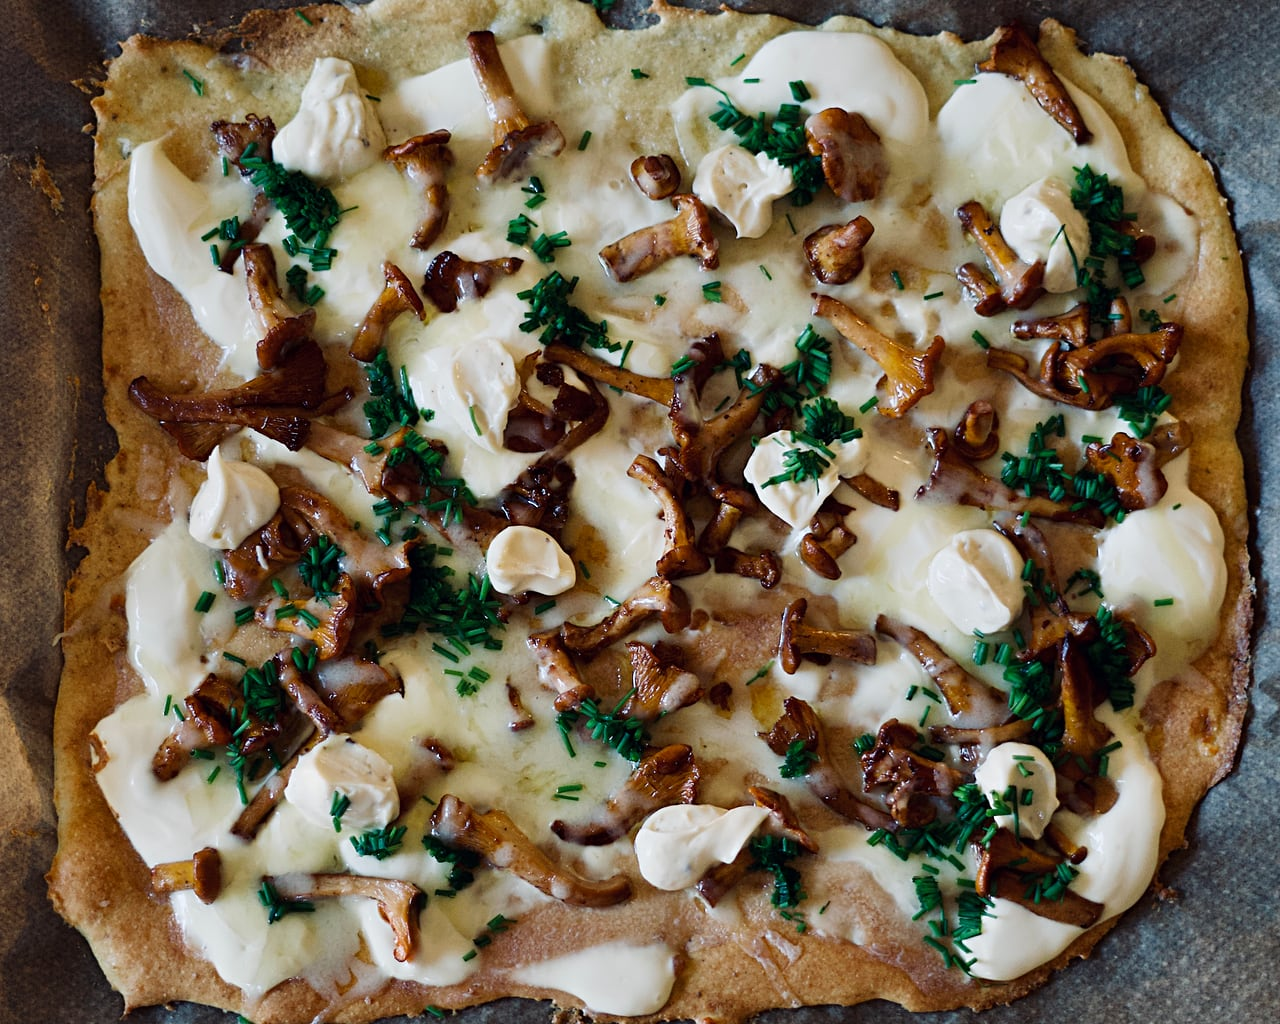 A pizza topped with chanterelle, cheese, mayo, and chive.